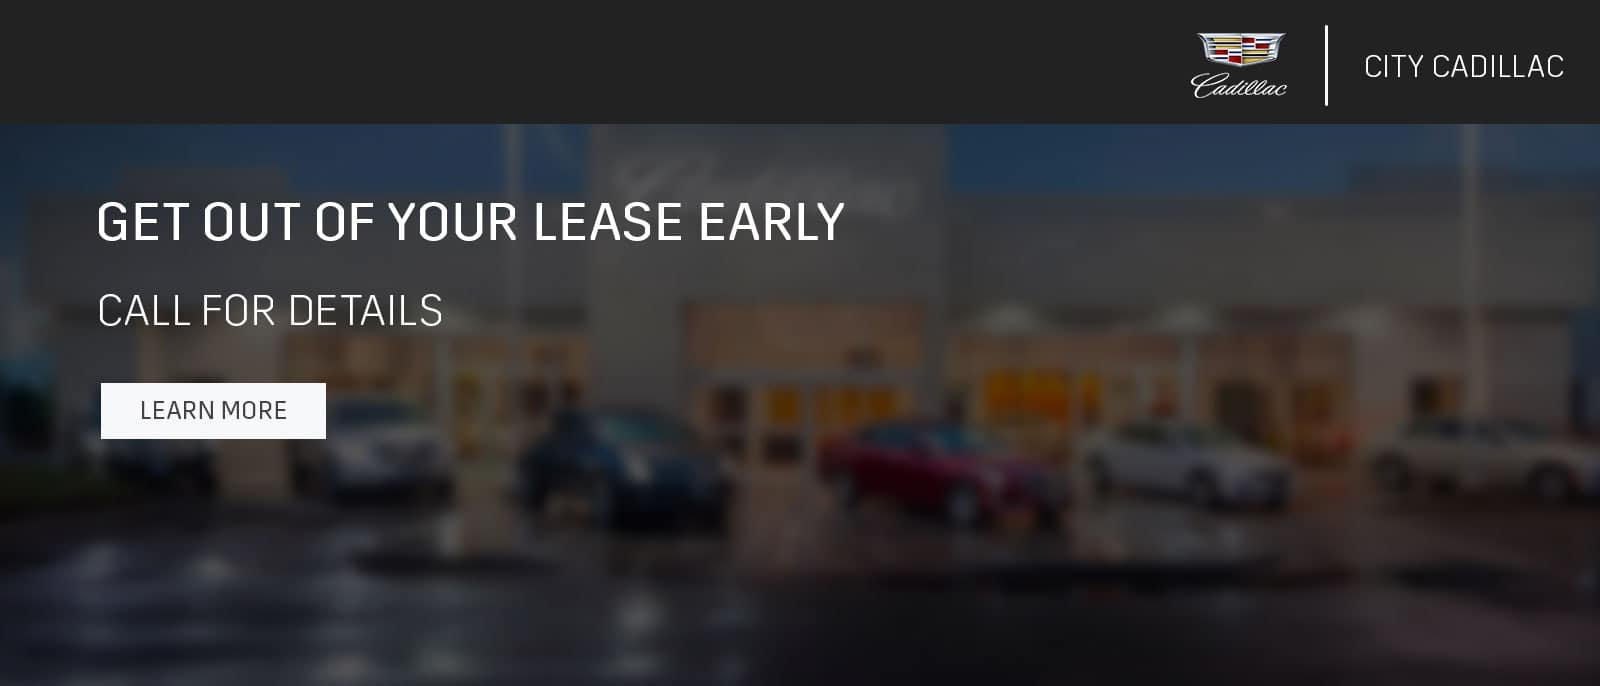 GET OUT OF YOUR LEASE EARLy